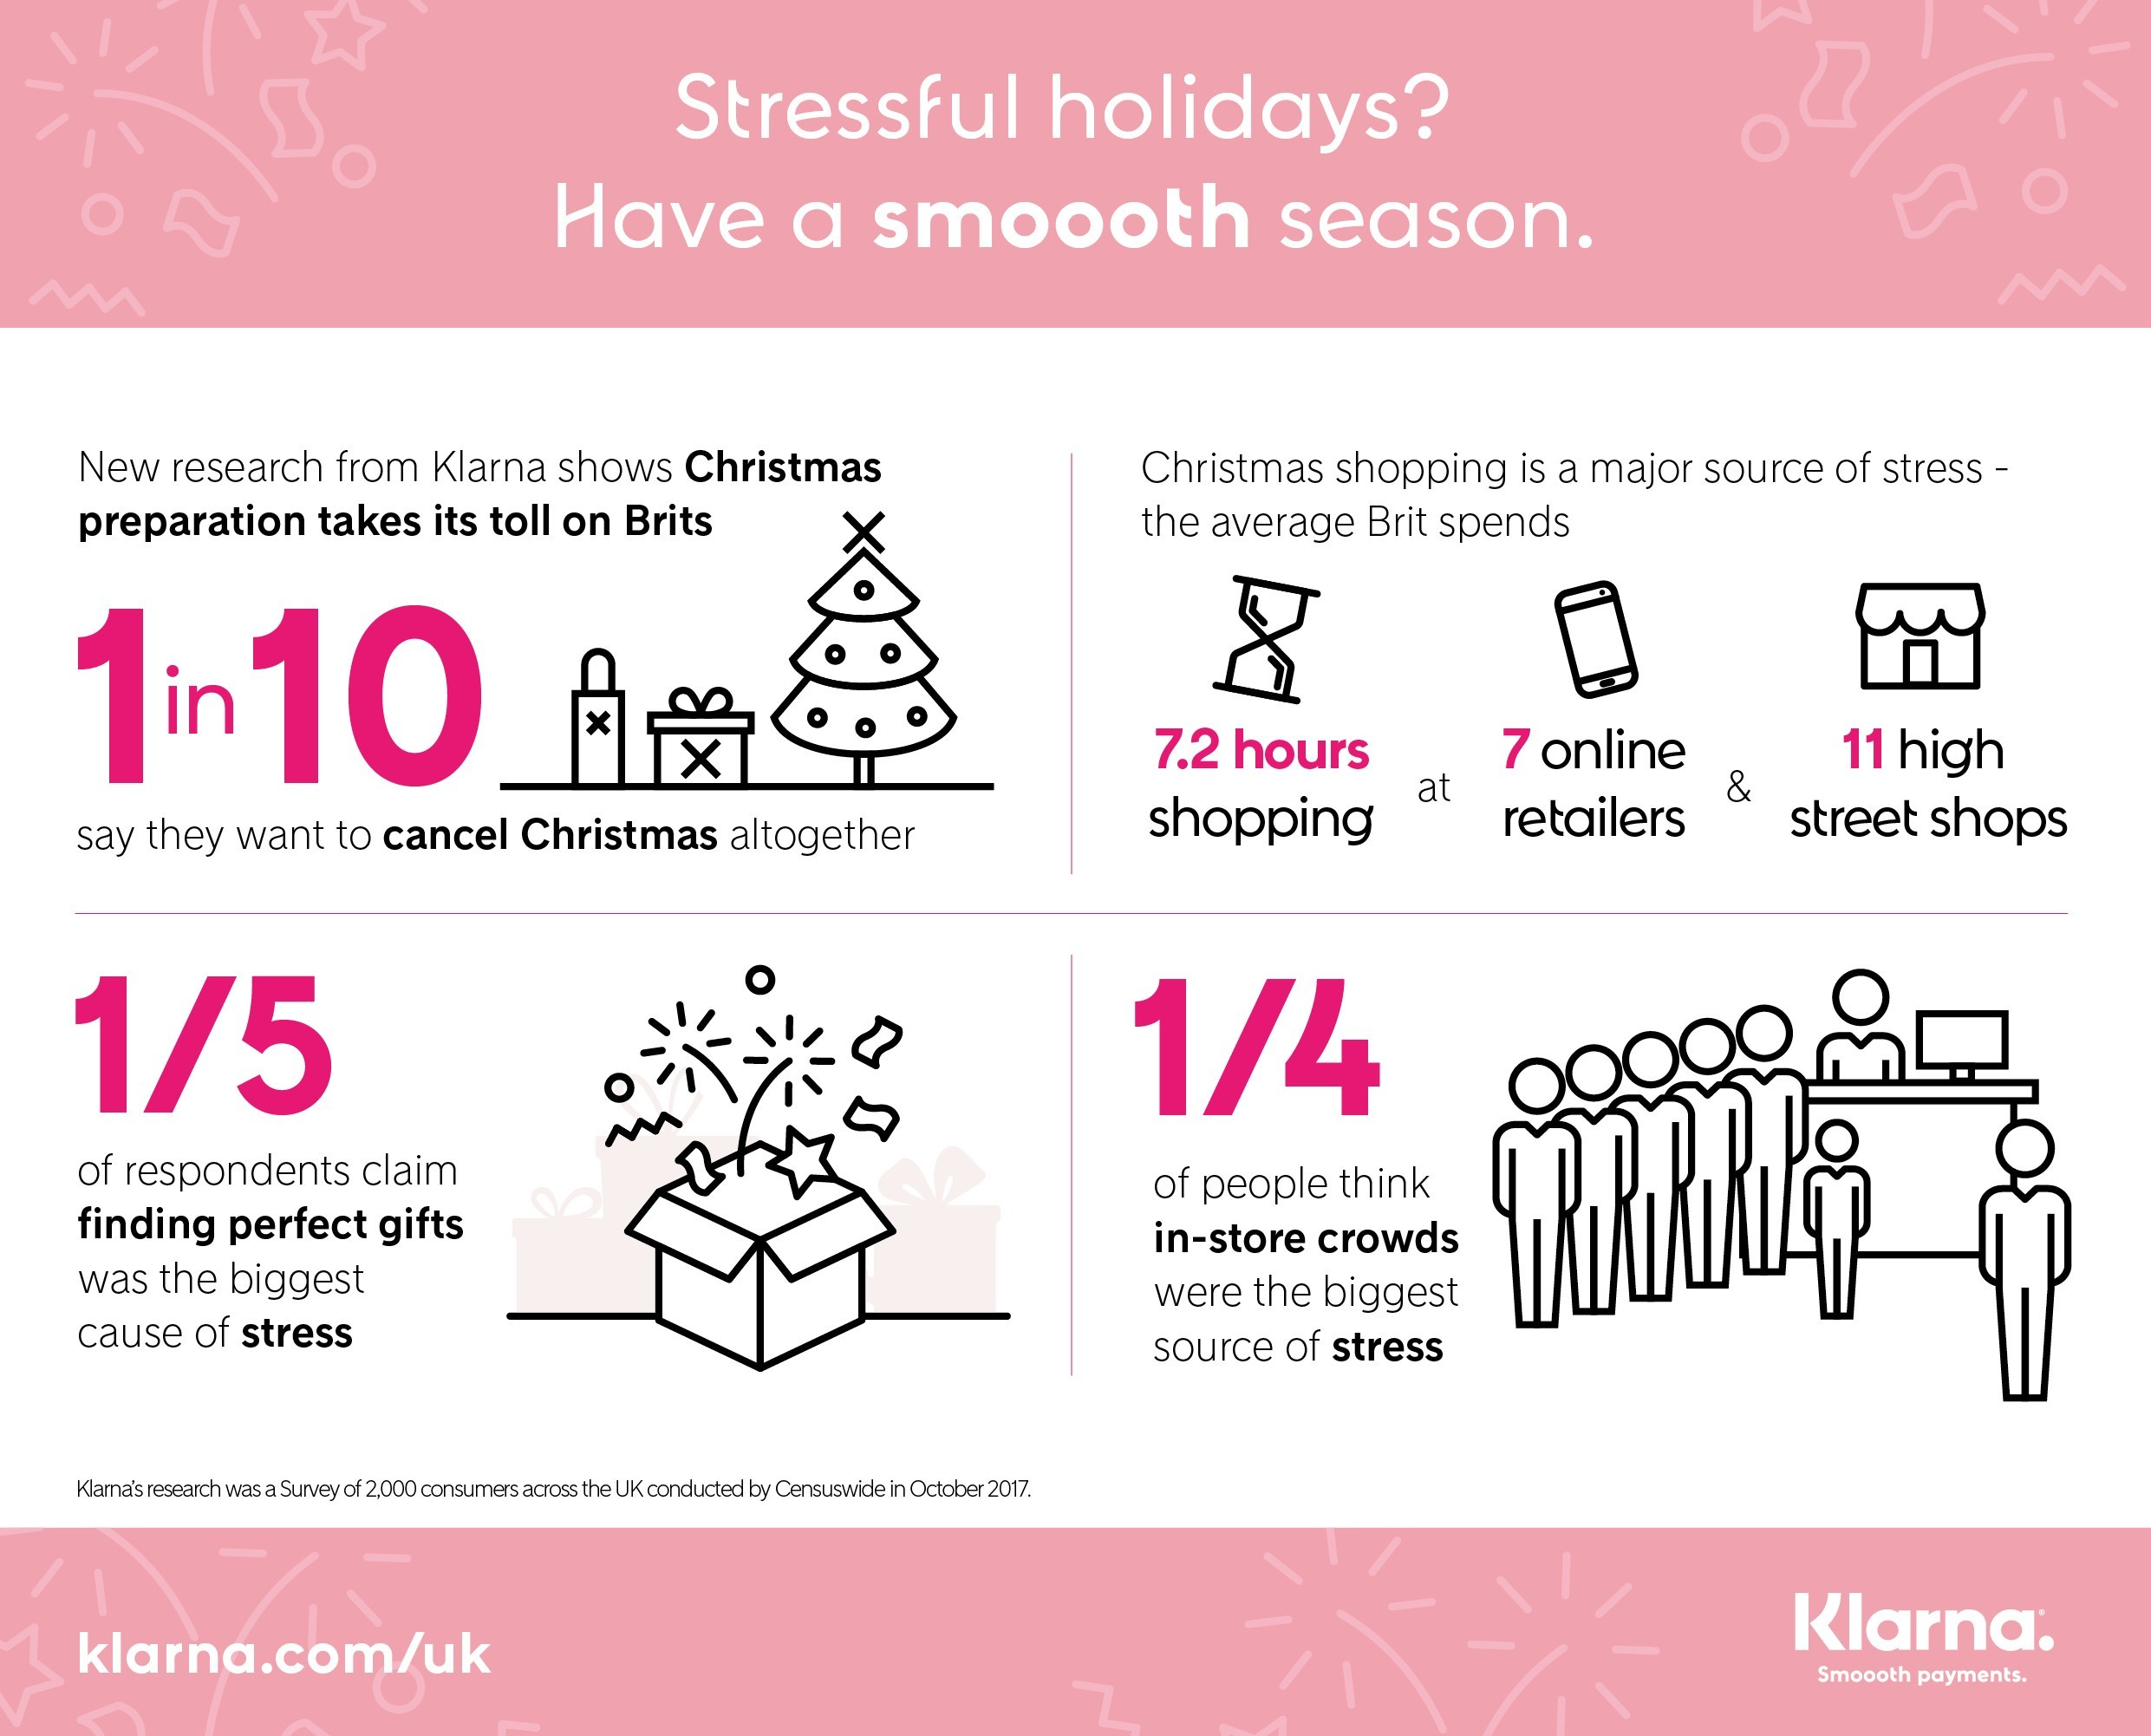 Klarna research reveals how to have a smooth Christmas season (PRNewsfoto/Klarna)